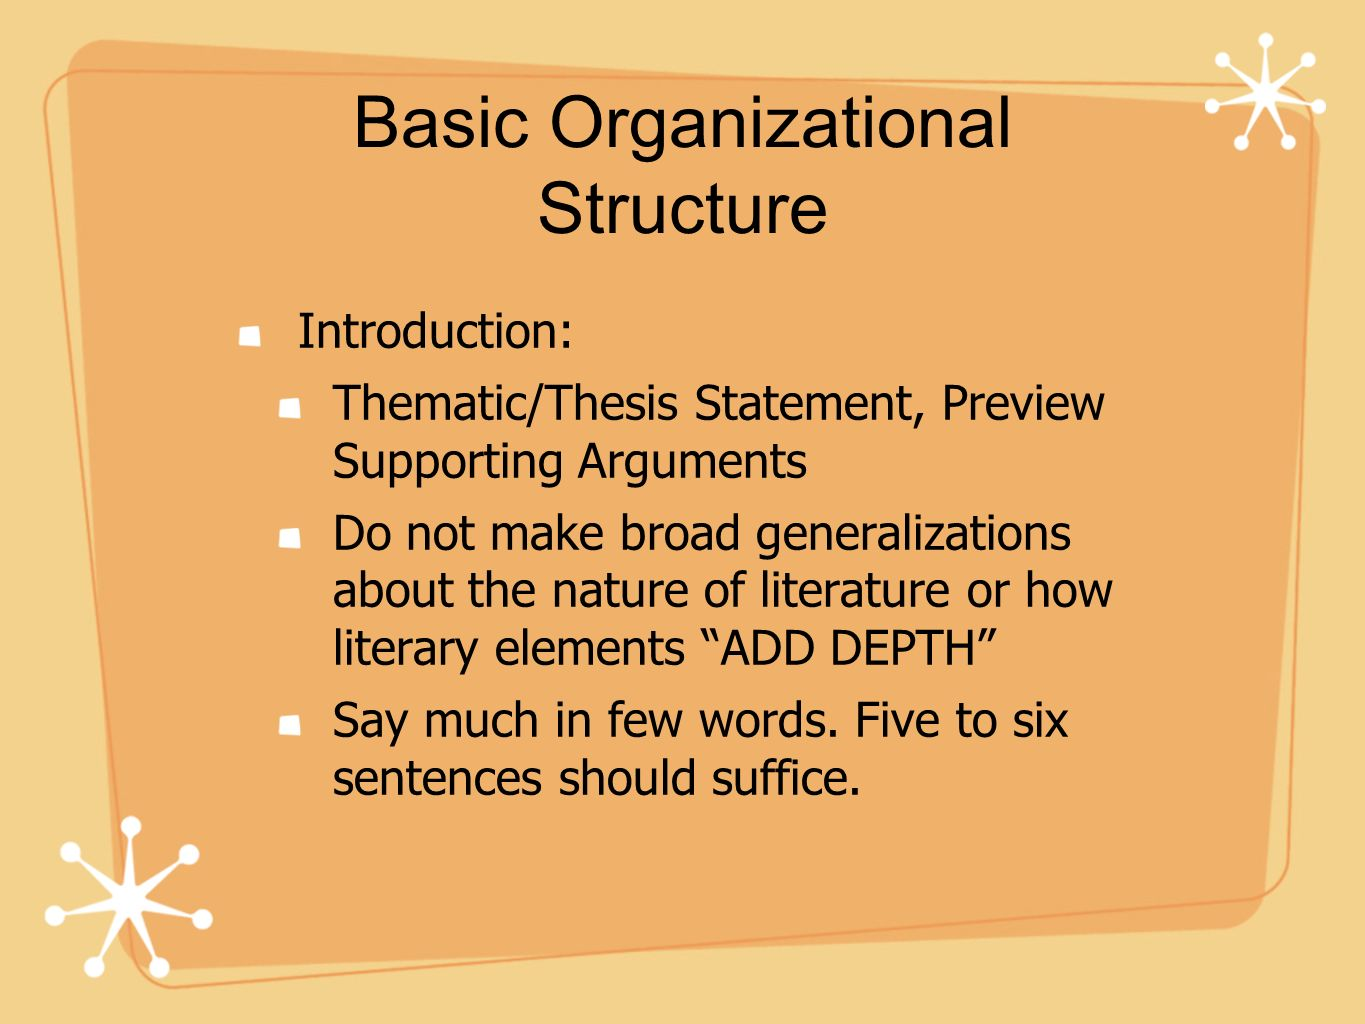 organizational statement essay Essay on organizational behavior: free examples of essays, research and term papers examples of organizational behavior essay topics, questions and thesis satatements.